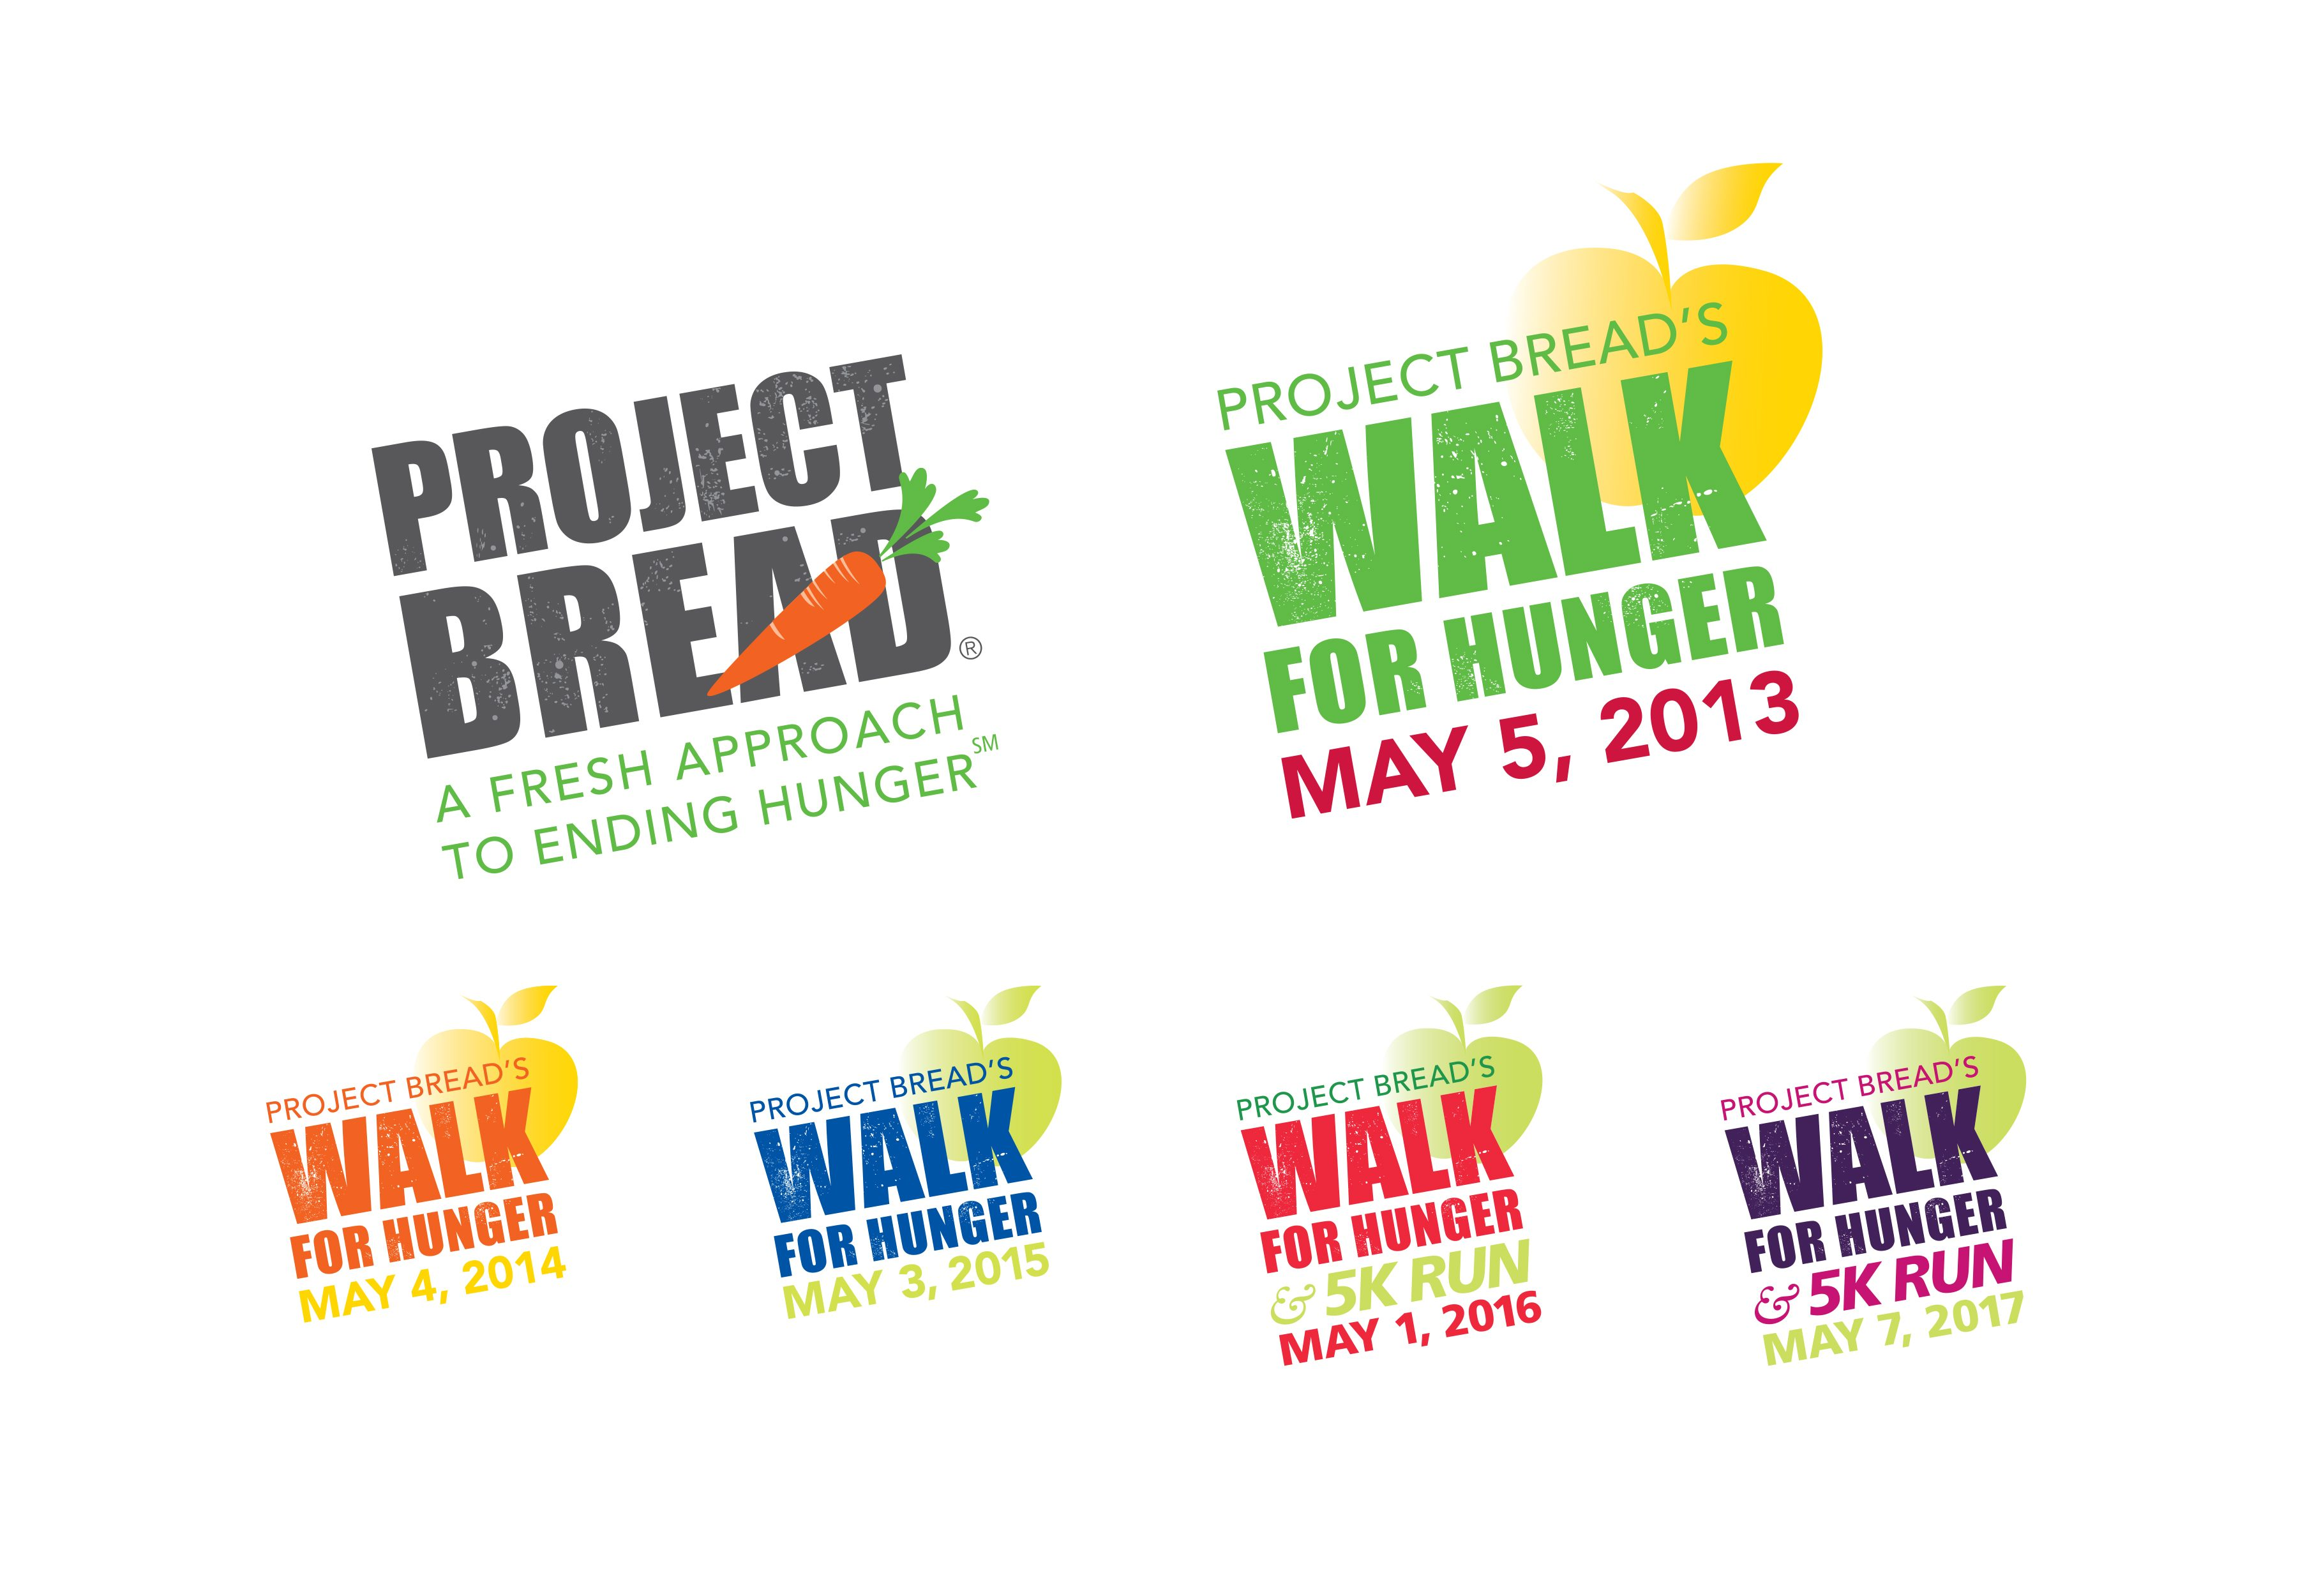 Project Bread and Walk for Hunger logos